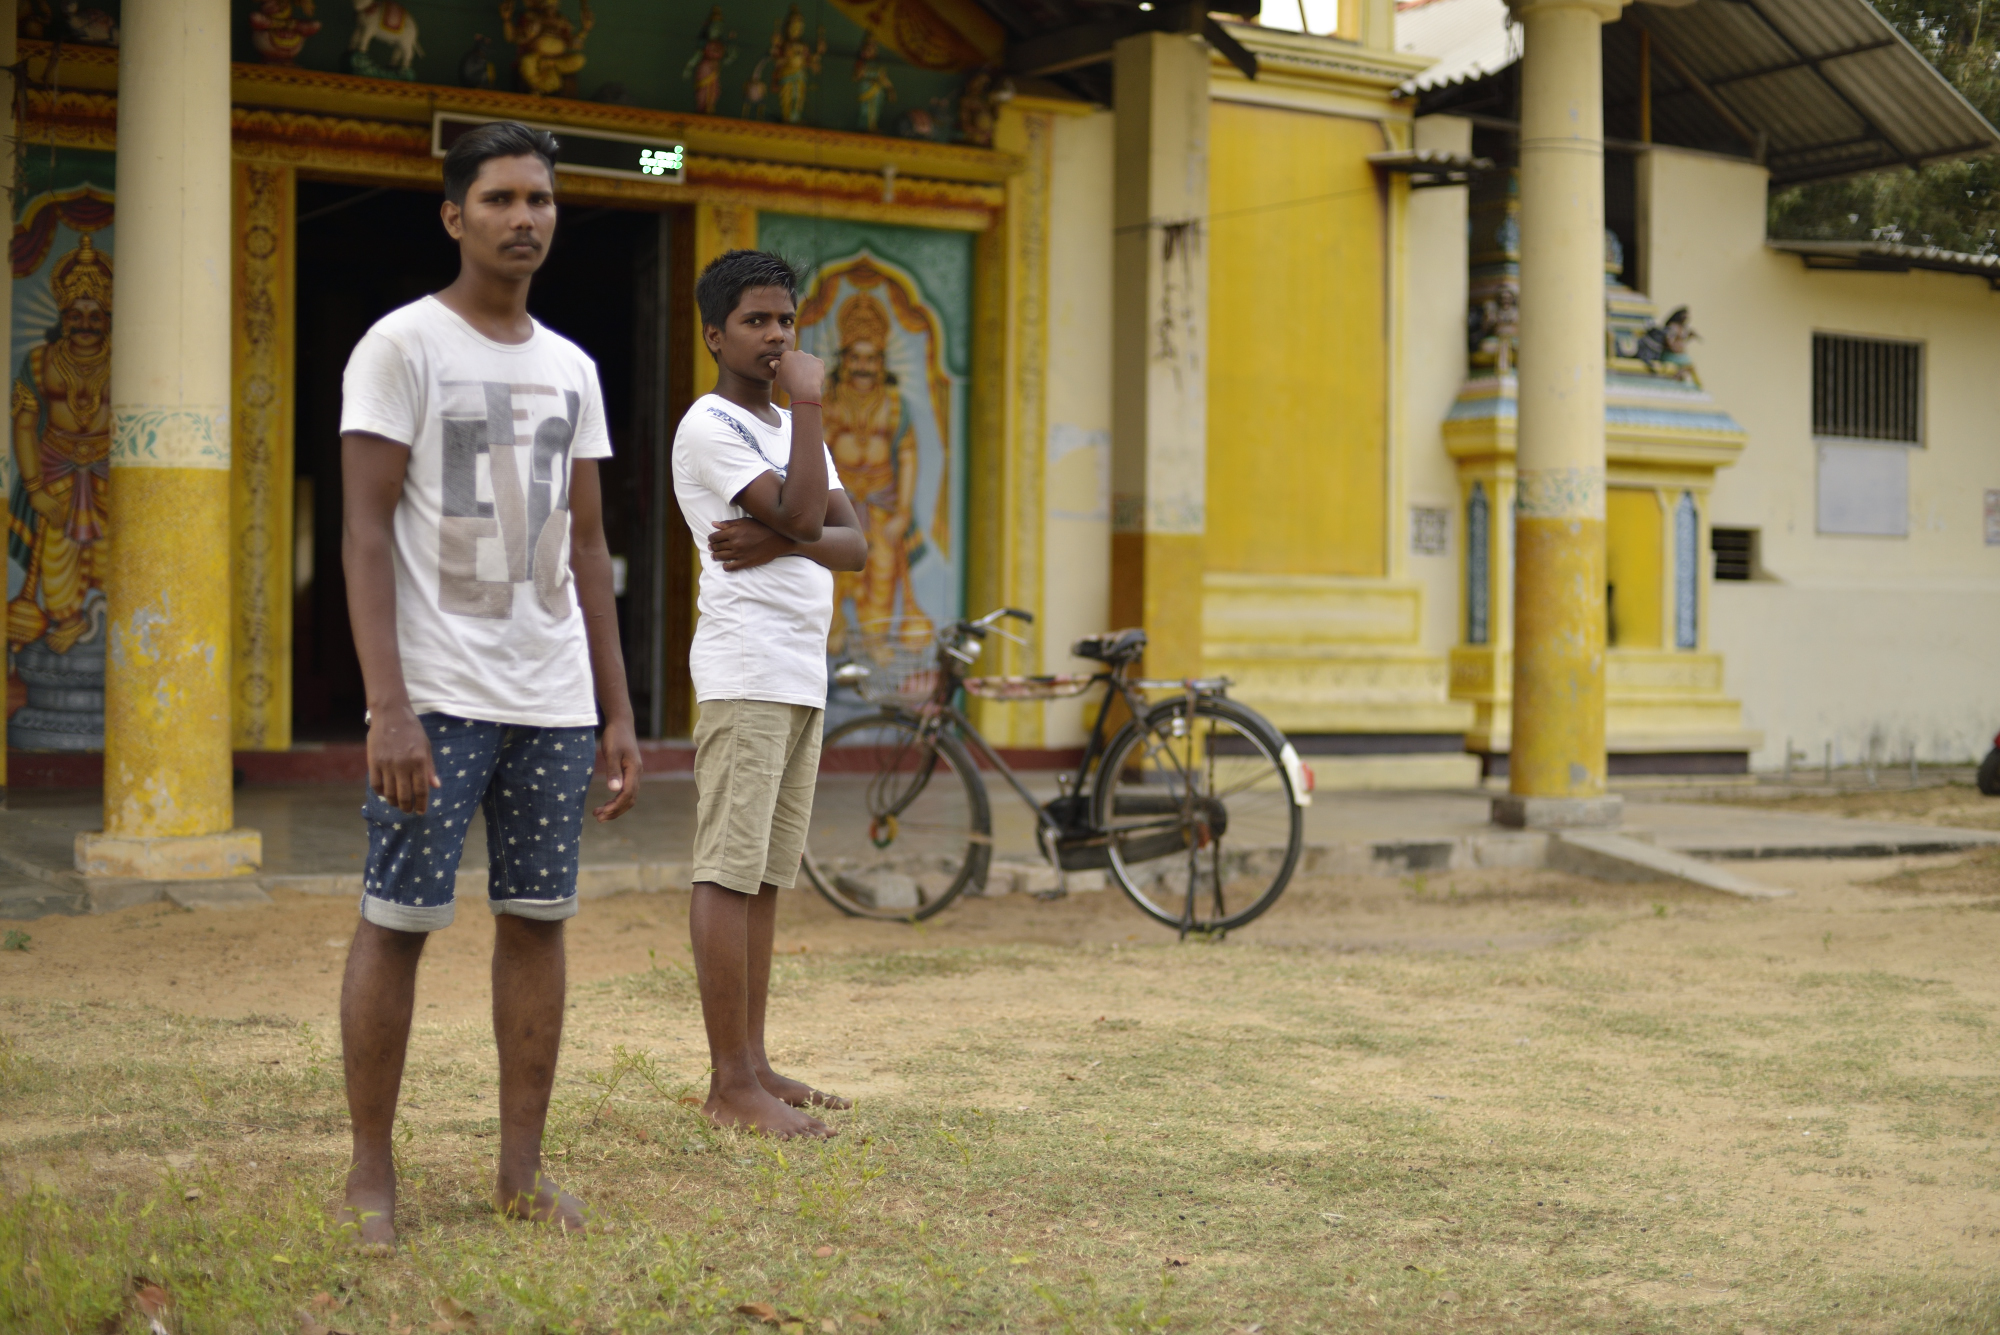 """Nirosan and his younger brother Tanusan outside the village temple, which they cannot enter because of the """"unclean"""" status of the Nalavar caste. Nirosan, from a family of tappers,works as a cook: """"If people there knew what my family does for work, it would be a problem… I cannot say."""""""